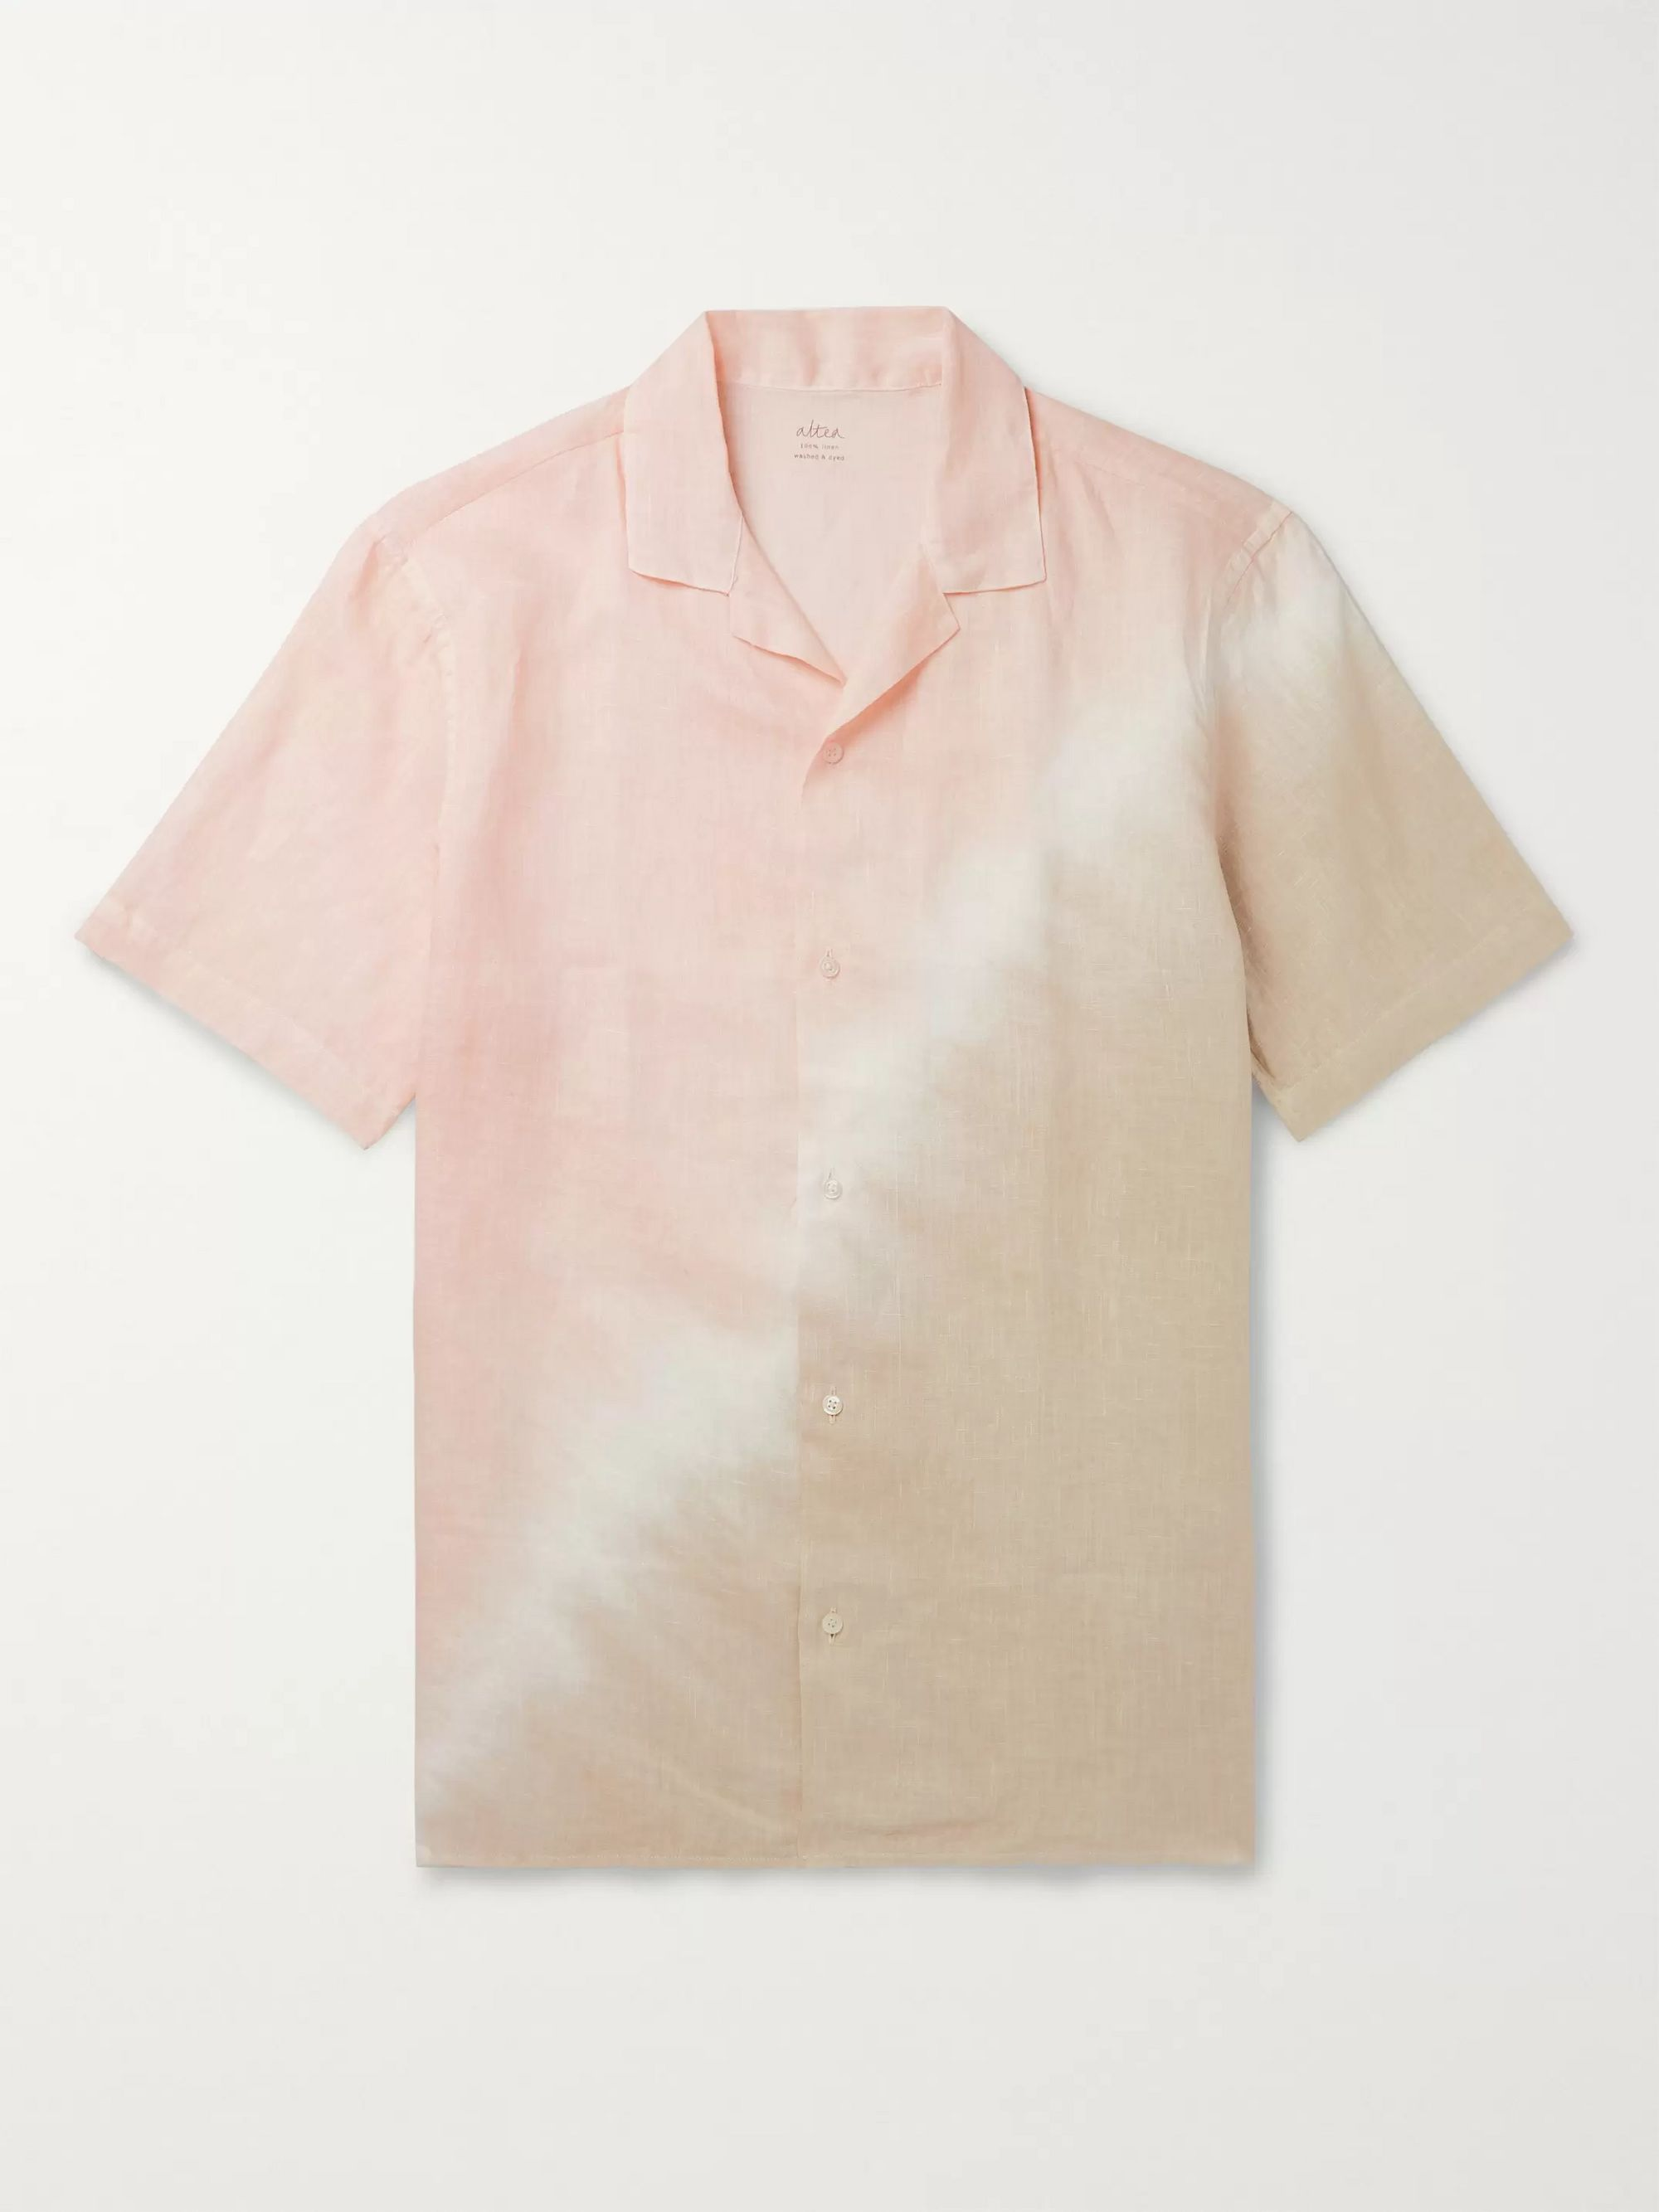 Altea Camp-Collar Tie-Dyed Linen Shirt